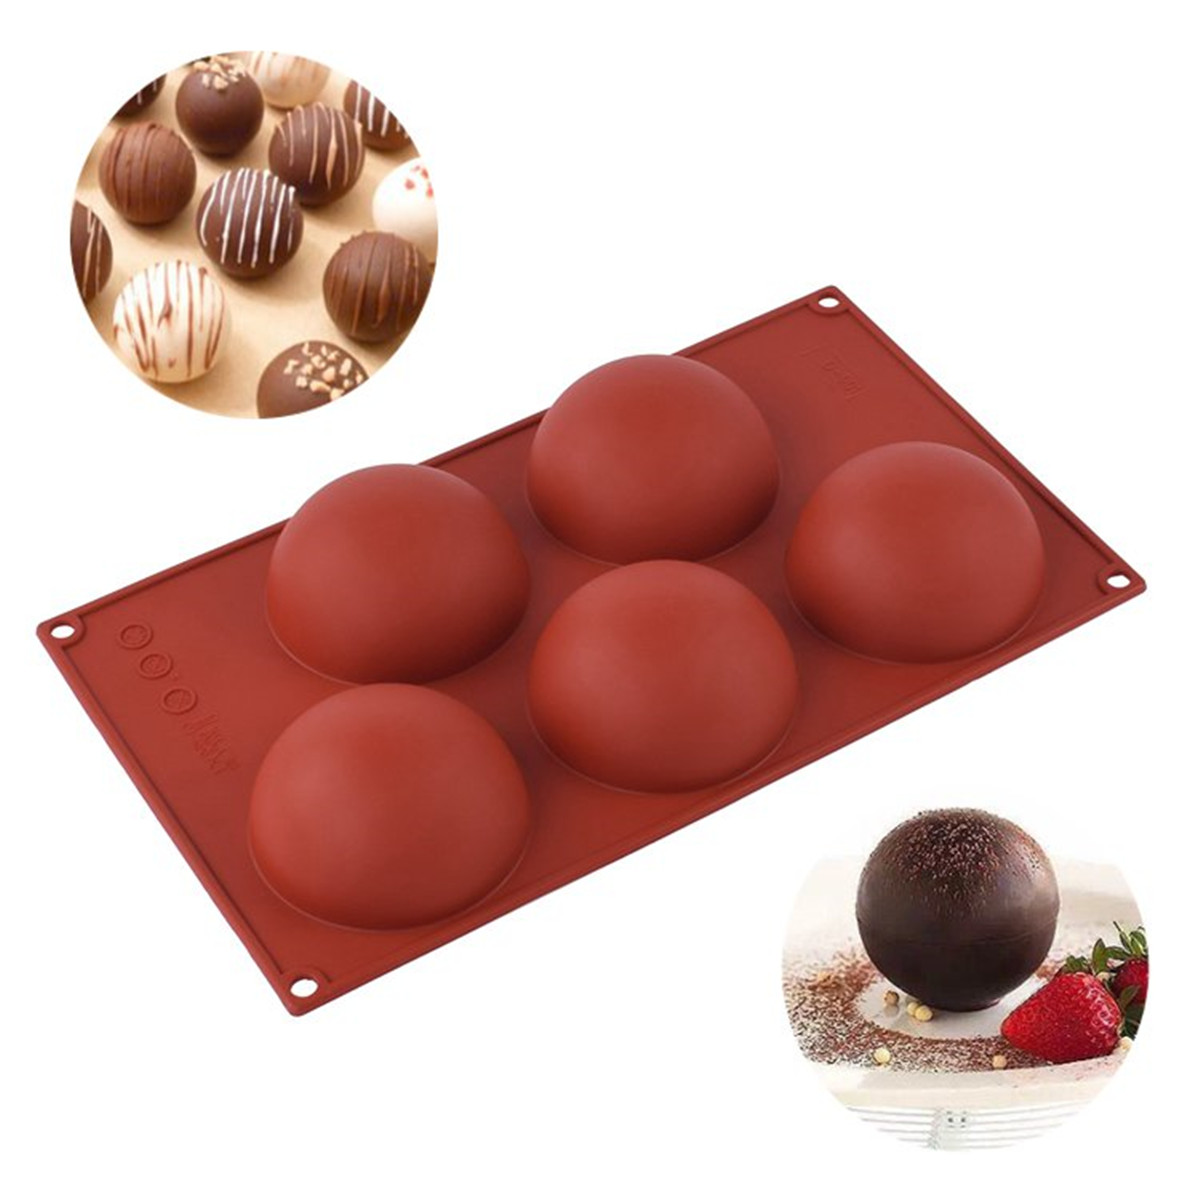 5 Cavity Silicone Bread Cake Chocolate Fondant Mold Mousse Pastry Baking Tools